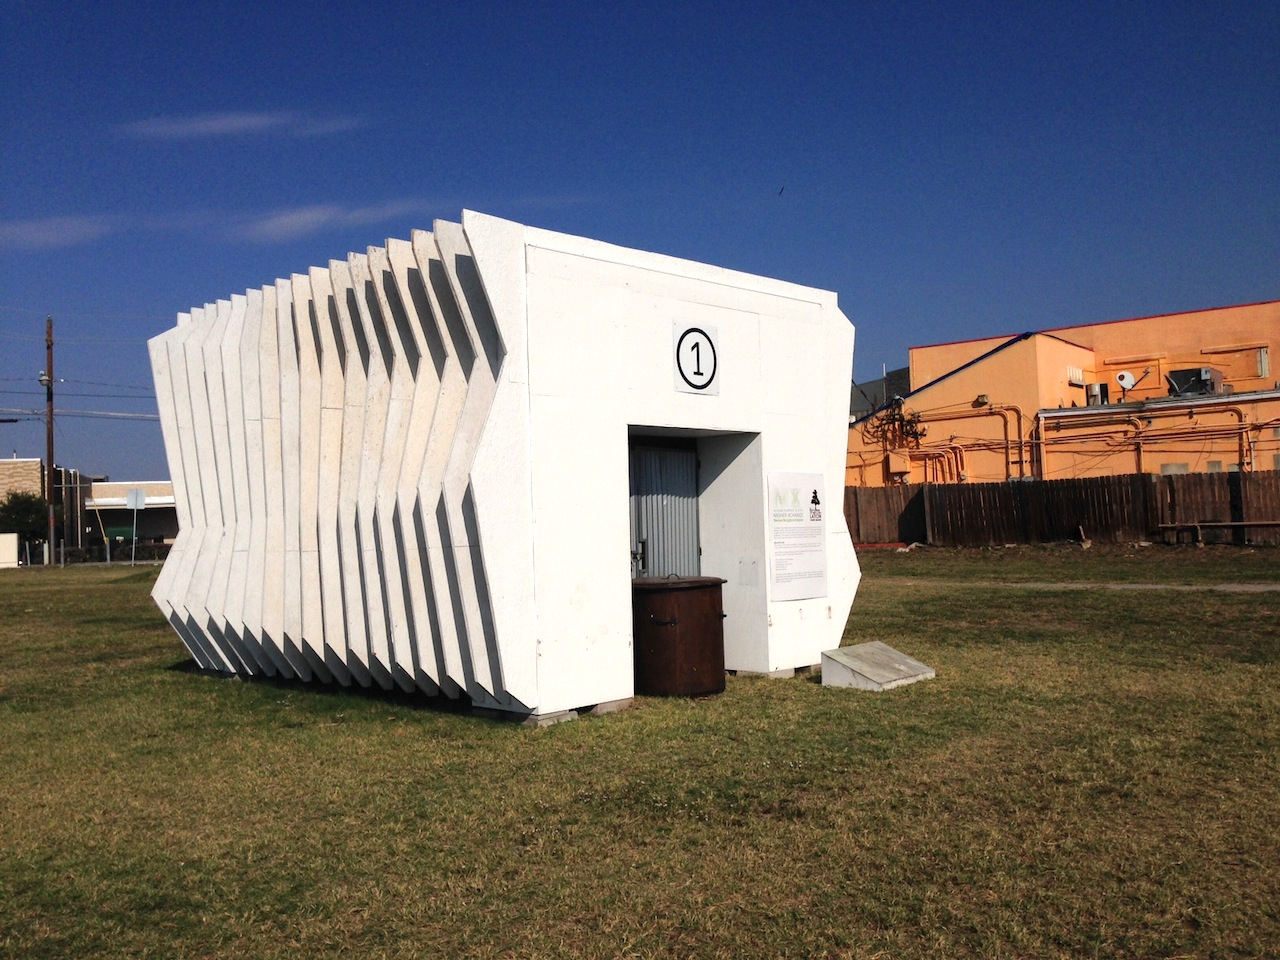 One of Rick Lowe's three White Cube Galleries in the Vickery Meadow neighborhood of Dallas (All images by the author for Hyperallergic)